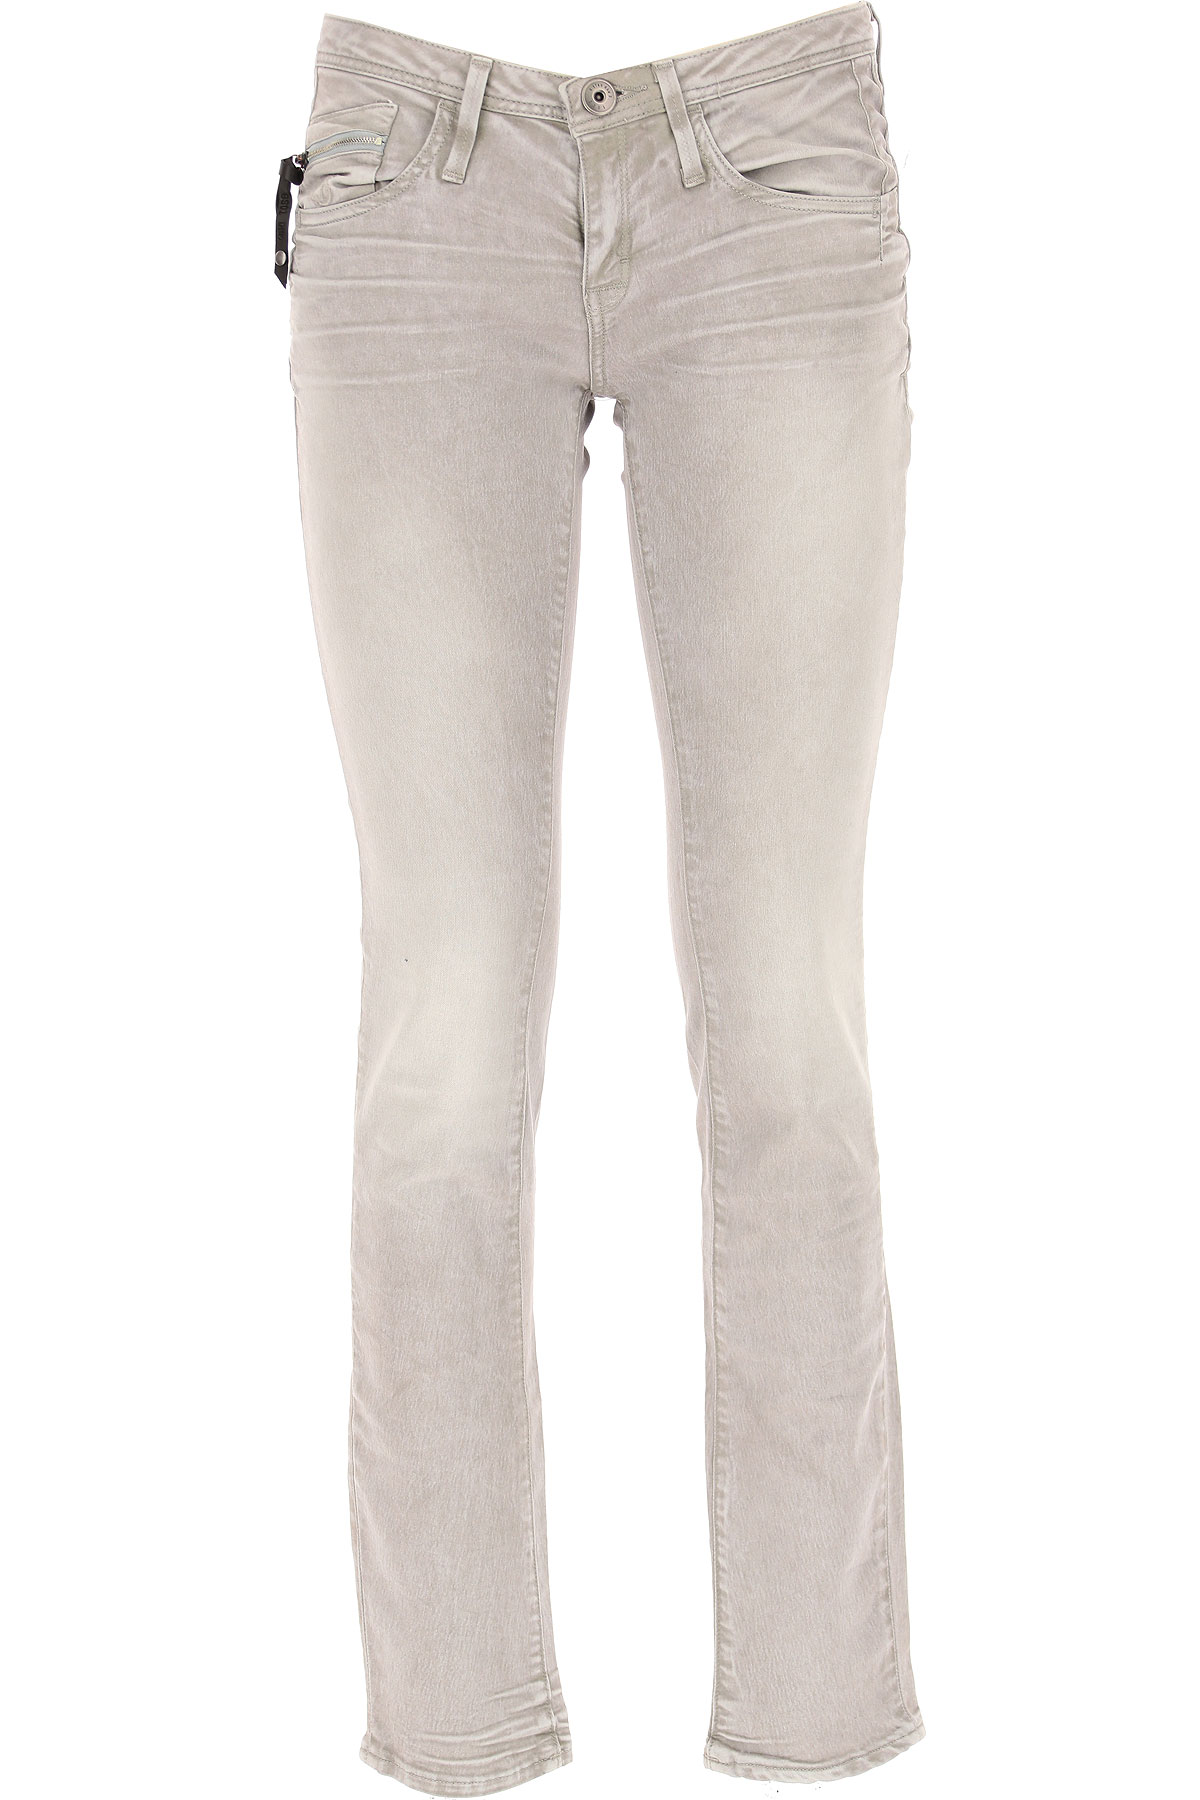 G-Star Jeans On Sale in Outlet, Grey, Cotton, 2019, 29 30 31